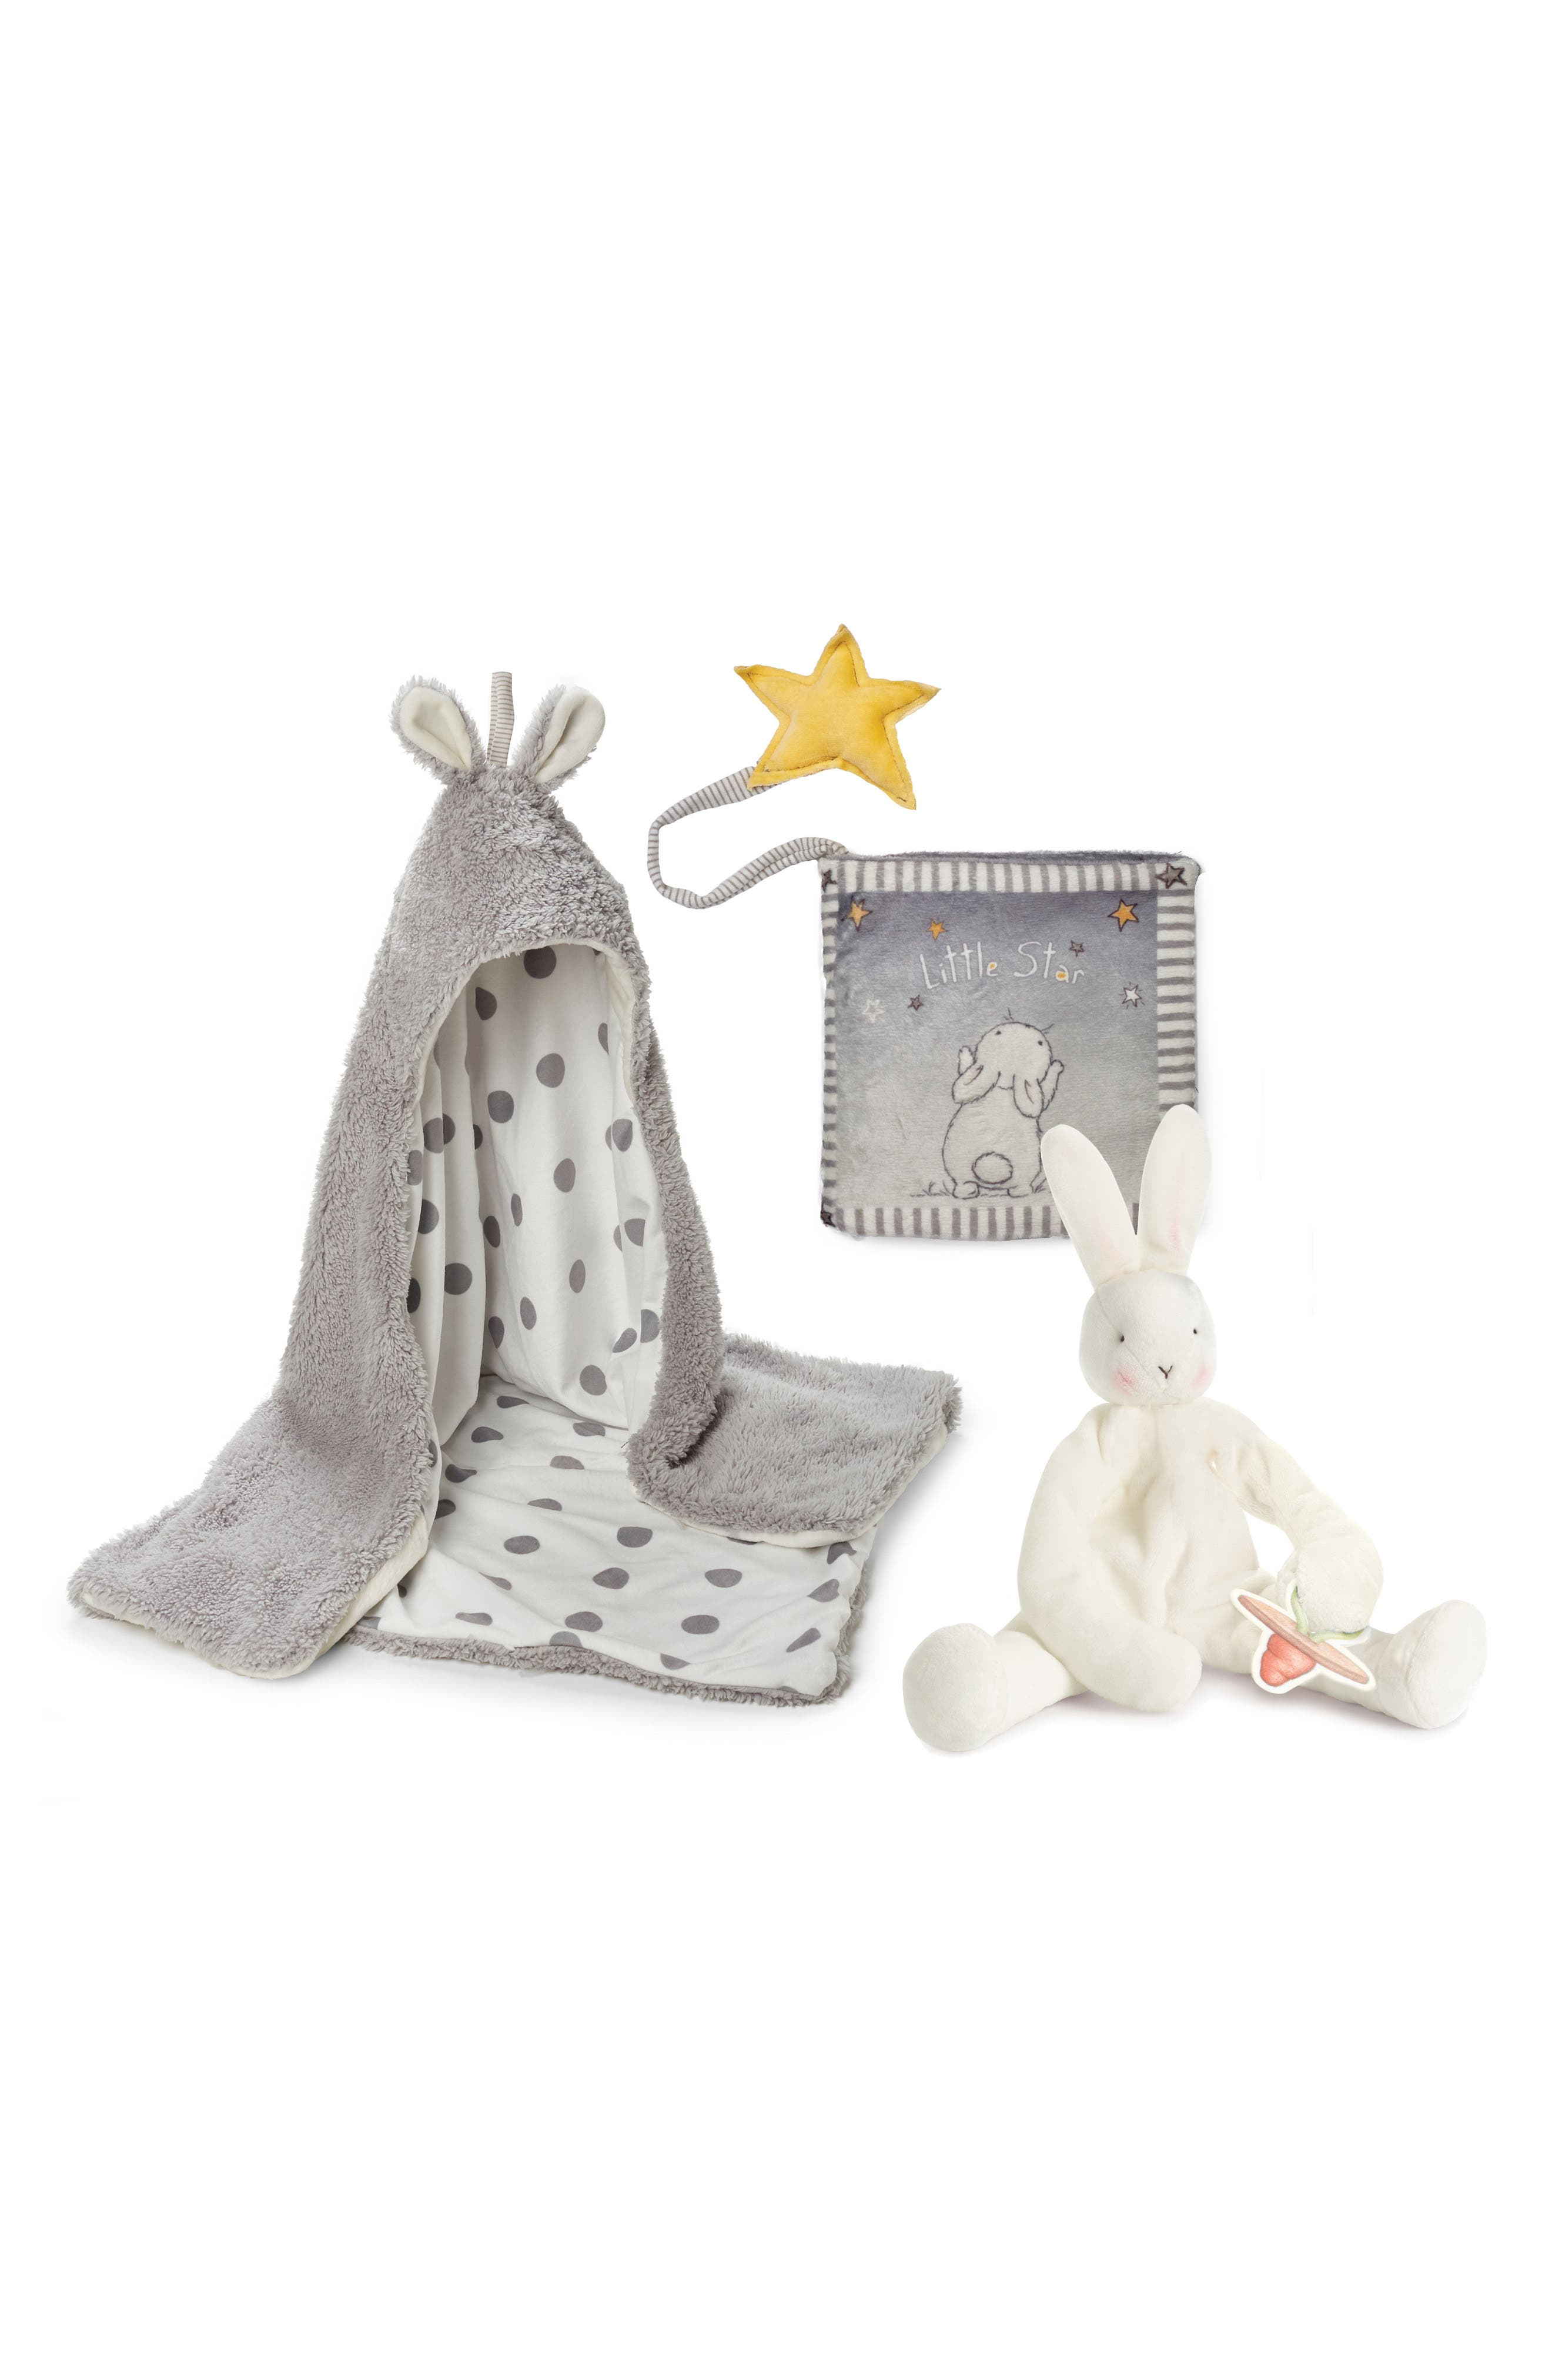 Storytime Hooded Blanket, Stuffed Animal & Book Set,                             Main thumbnail 1, color,                             Glad Dreams Grey